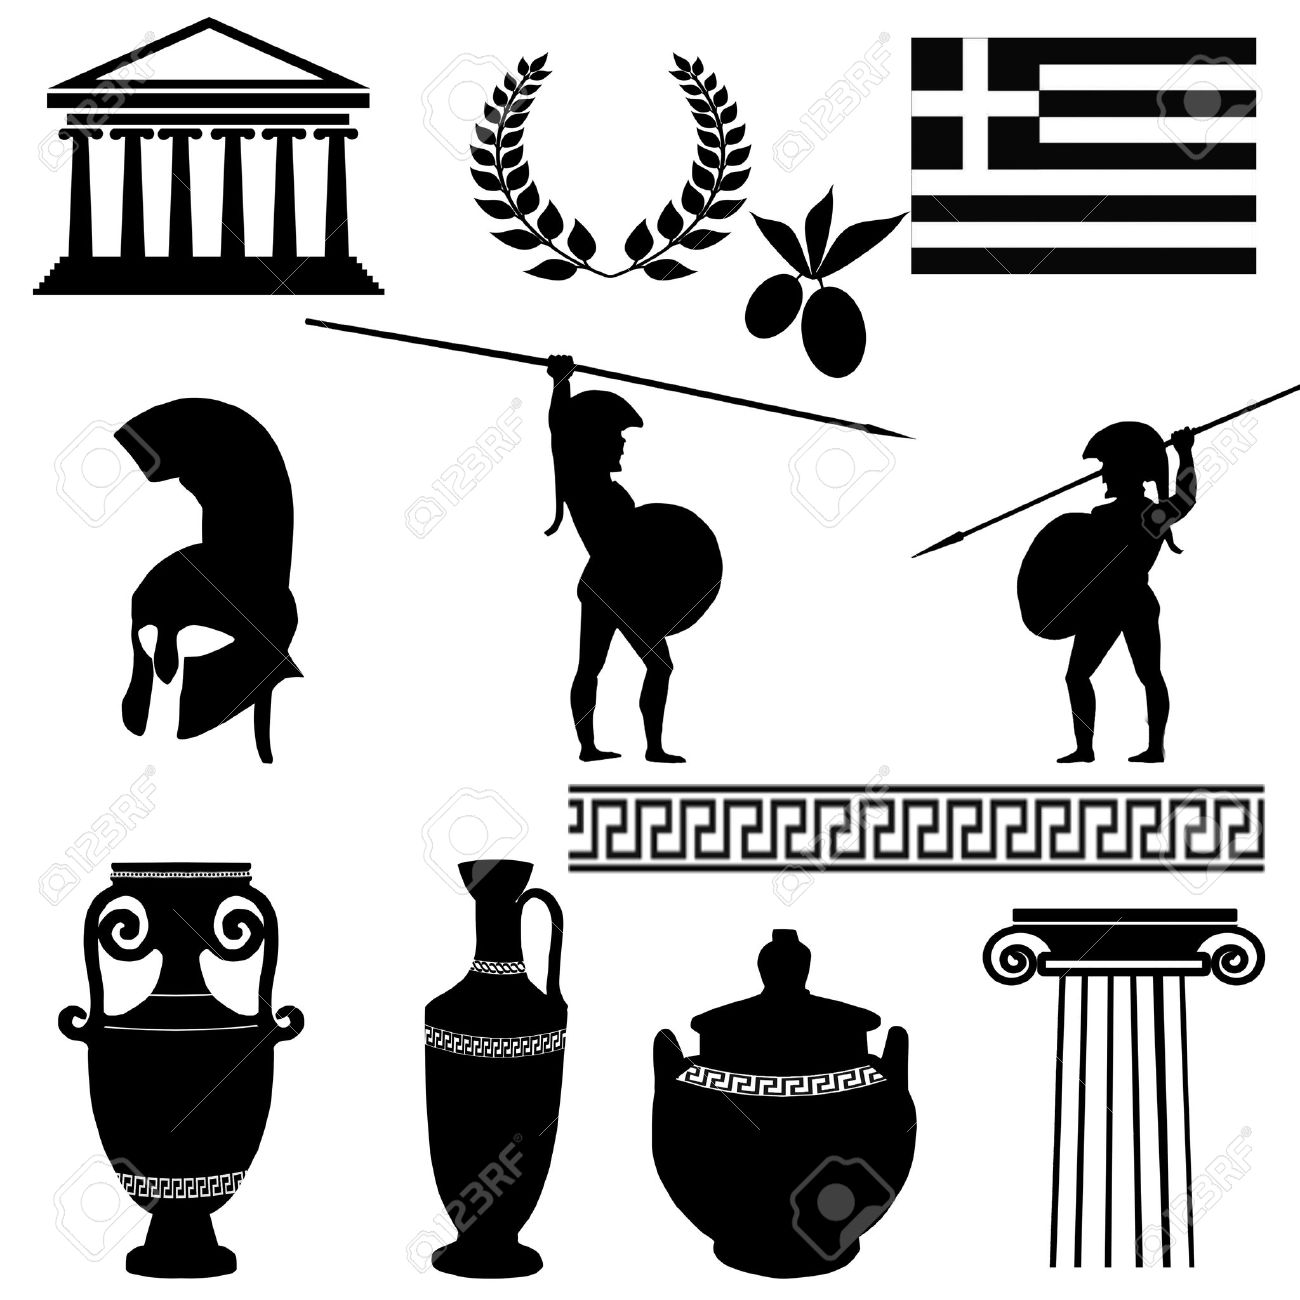 Traditional symbols of greece on white background royalty free traditional symbols of greece on white background stock vector 15924732 buycottarizona